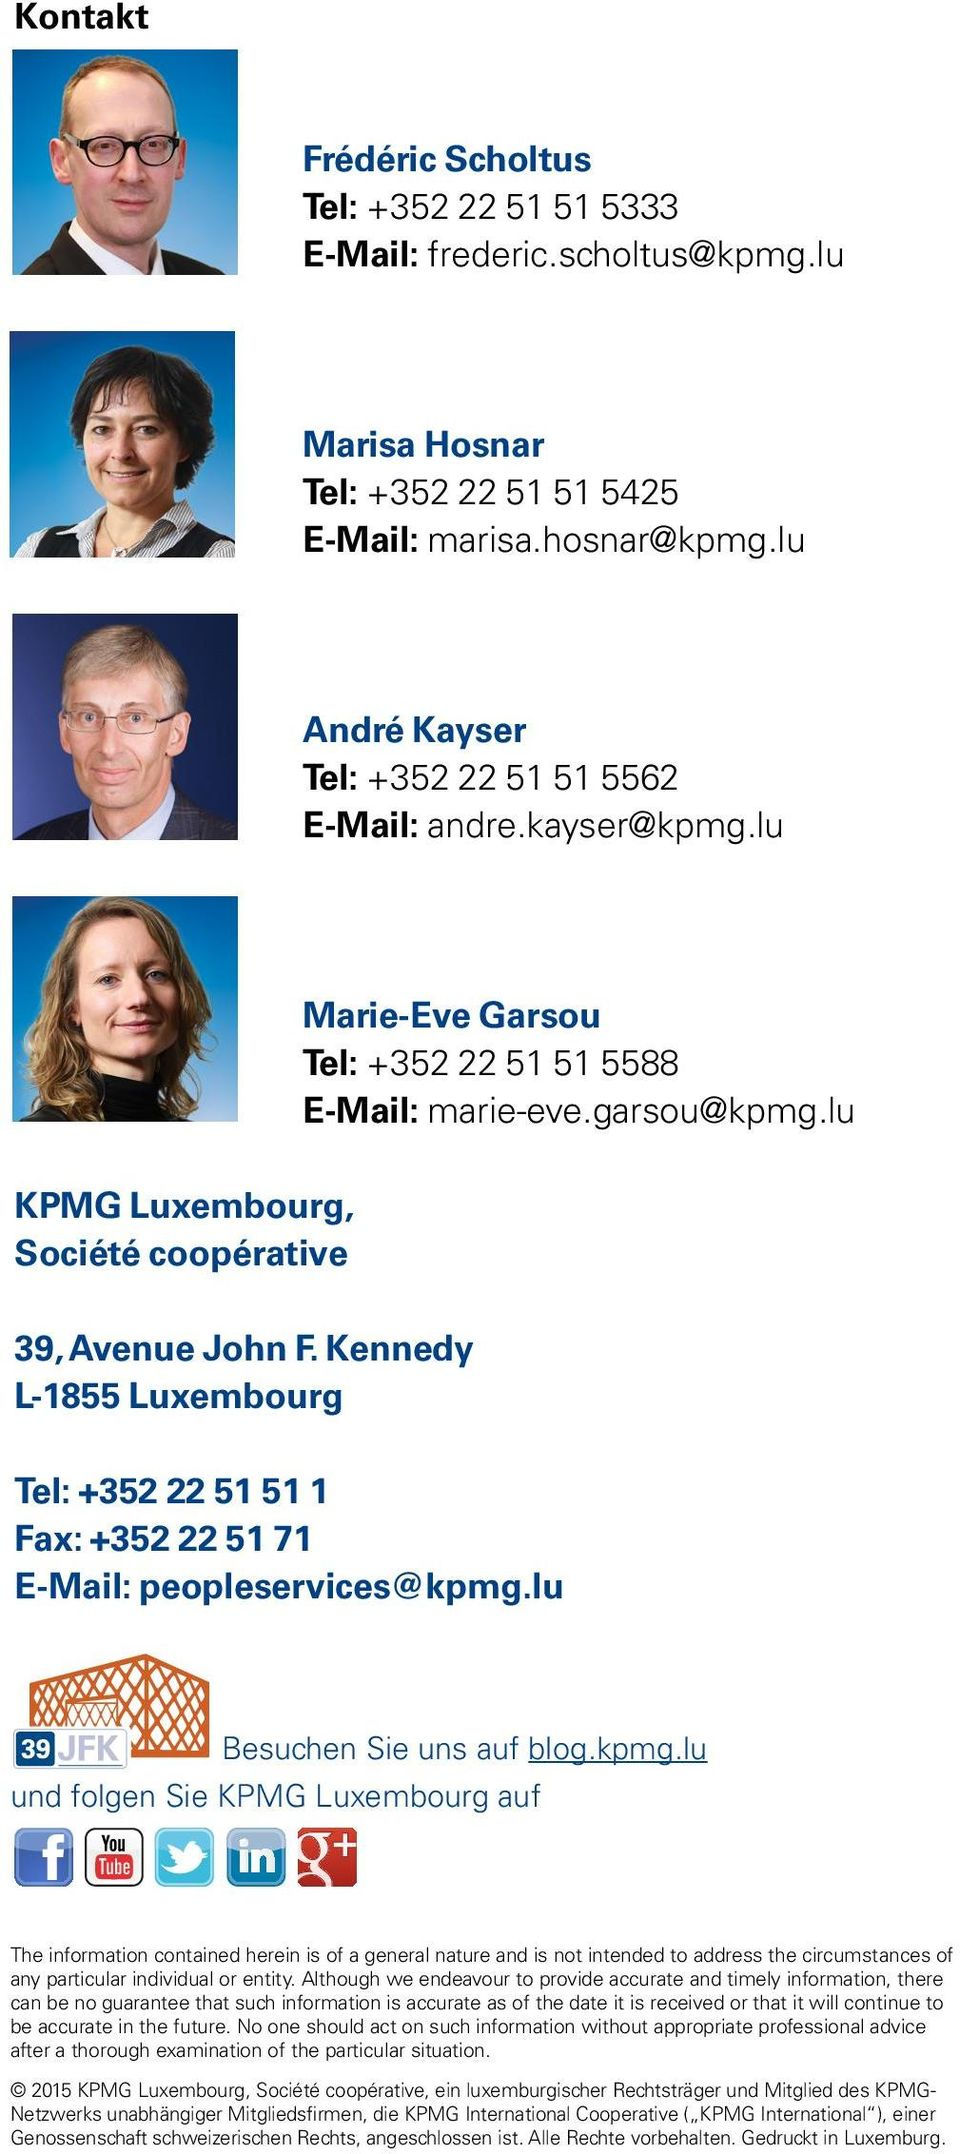 Kennedy L-1855 Luxembourg Tel: +352 22 51 51 1 Fax: +352 22 51 71 E-Mail: peopleservices@kpmg.